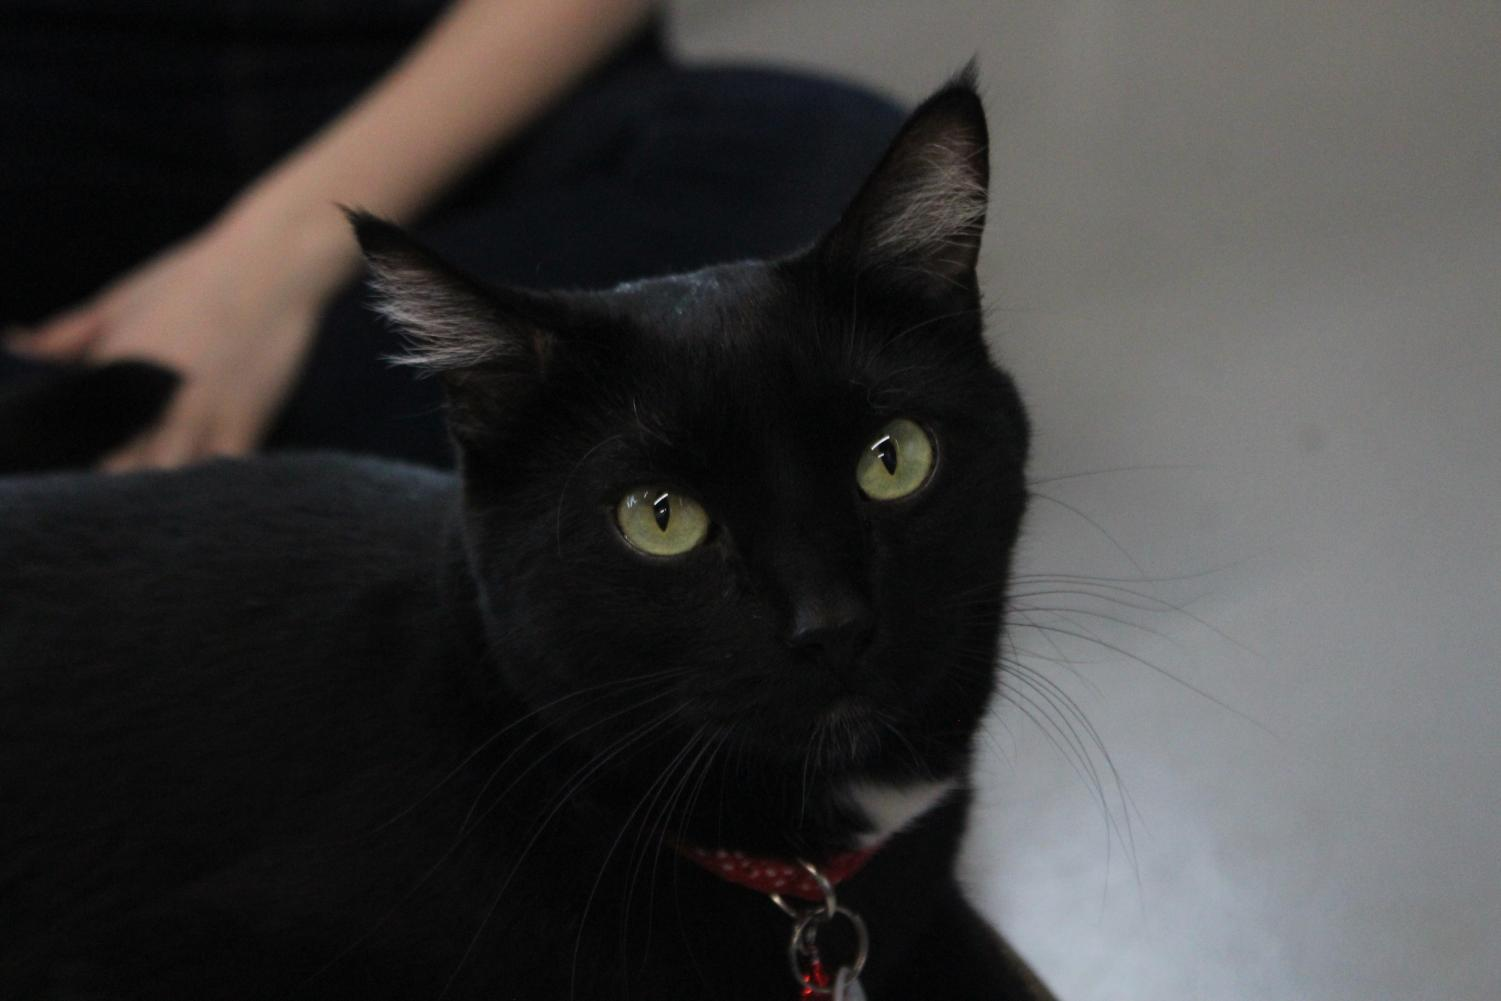 Waiting to be pet, Popcorn, one of the several cats up for adoption at the cafe, watches patrons of Felius. Customers are able to enjoy coffee or tea and then enjoy petting and cuddling with the cats and kittens.